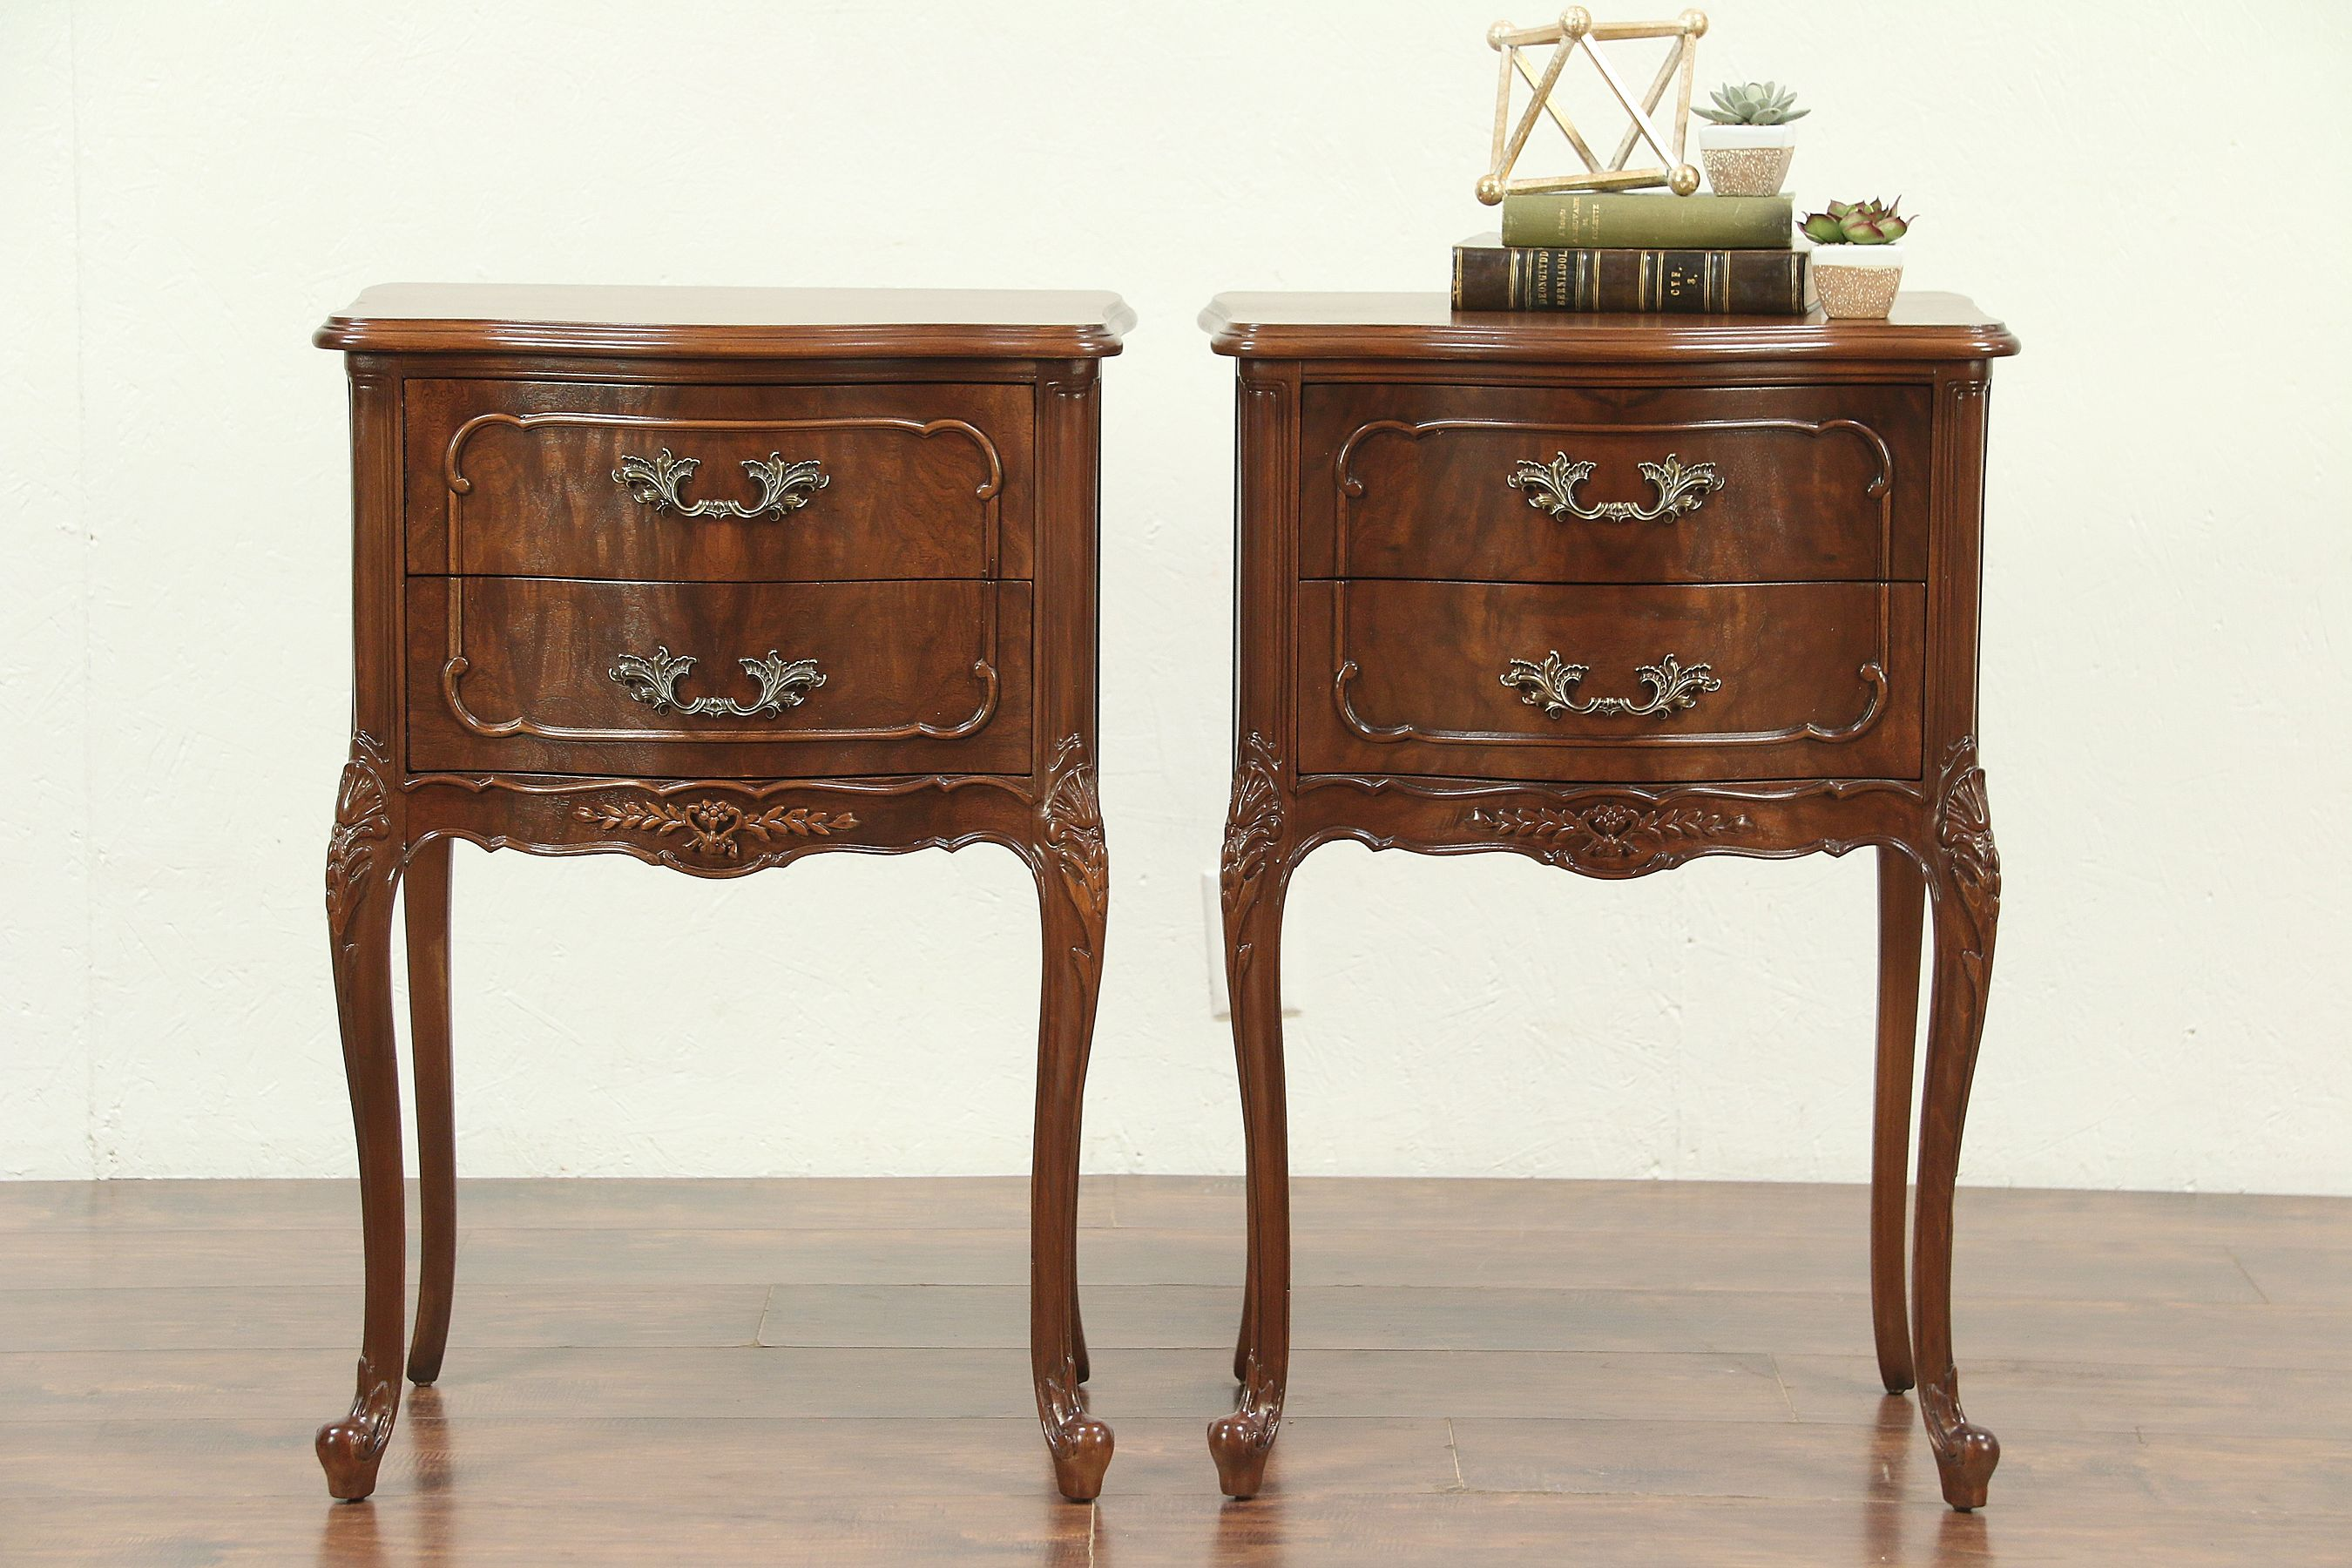 sold pair french style vintage walnut nightstands end tables and airy universal furniture unfinished wood corner desk normal height coffee table creative dog cages navy blue